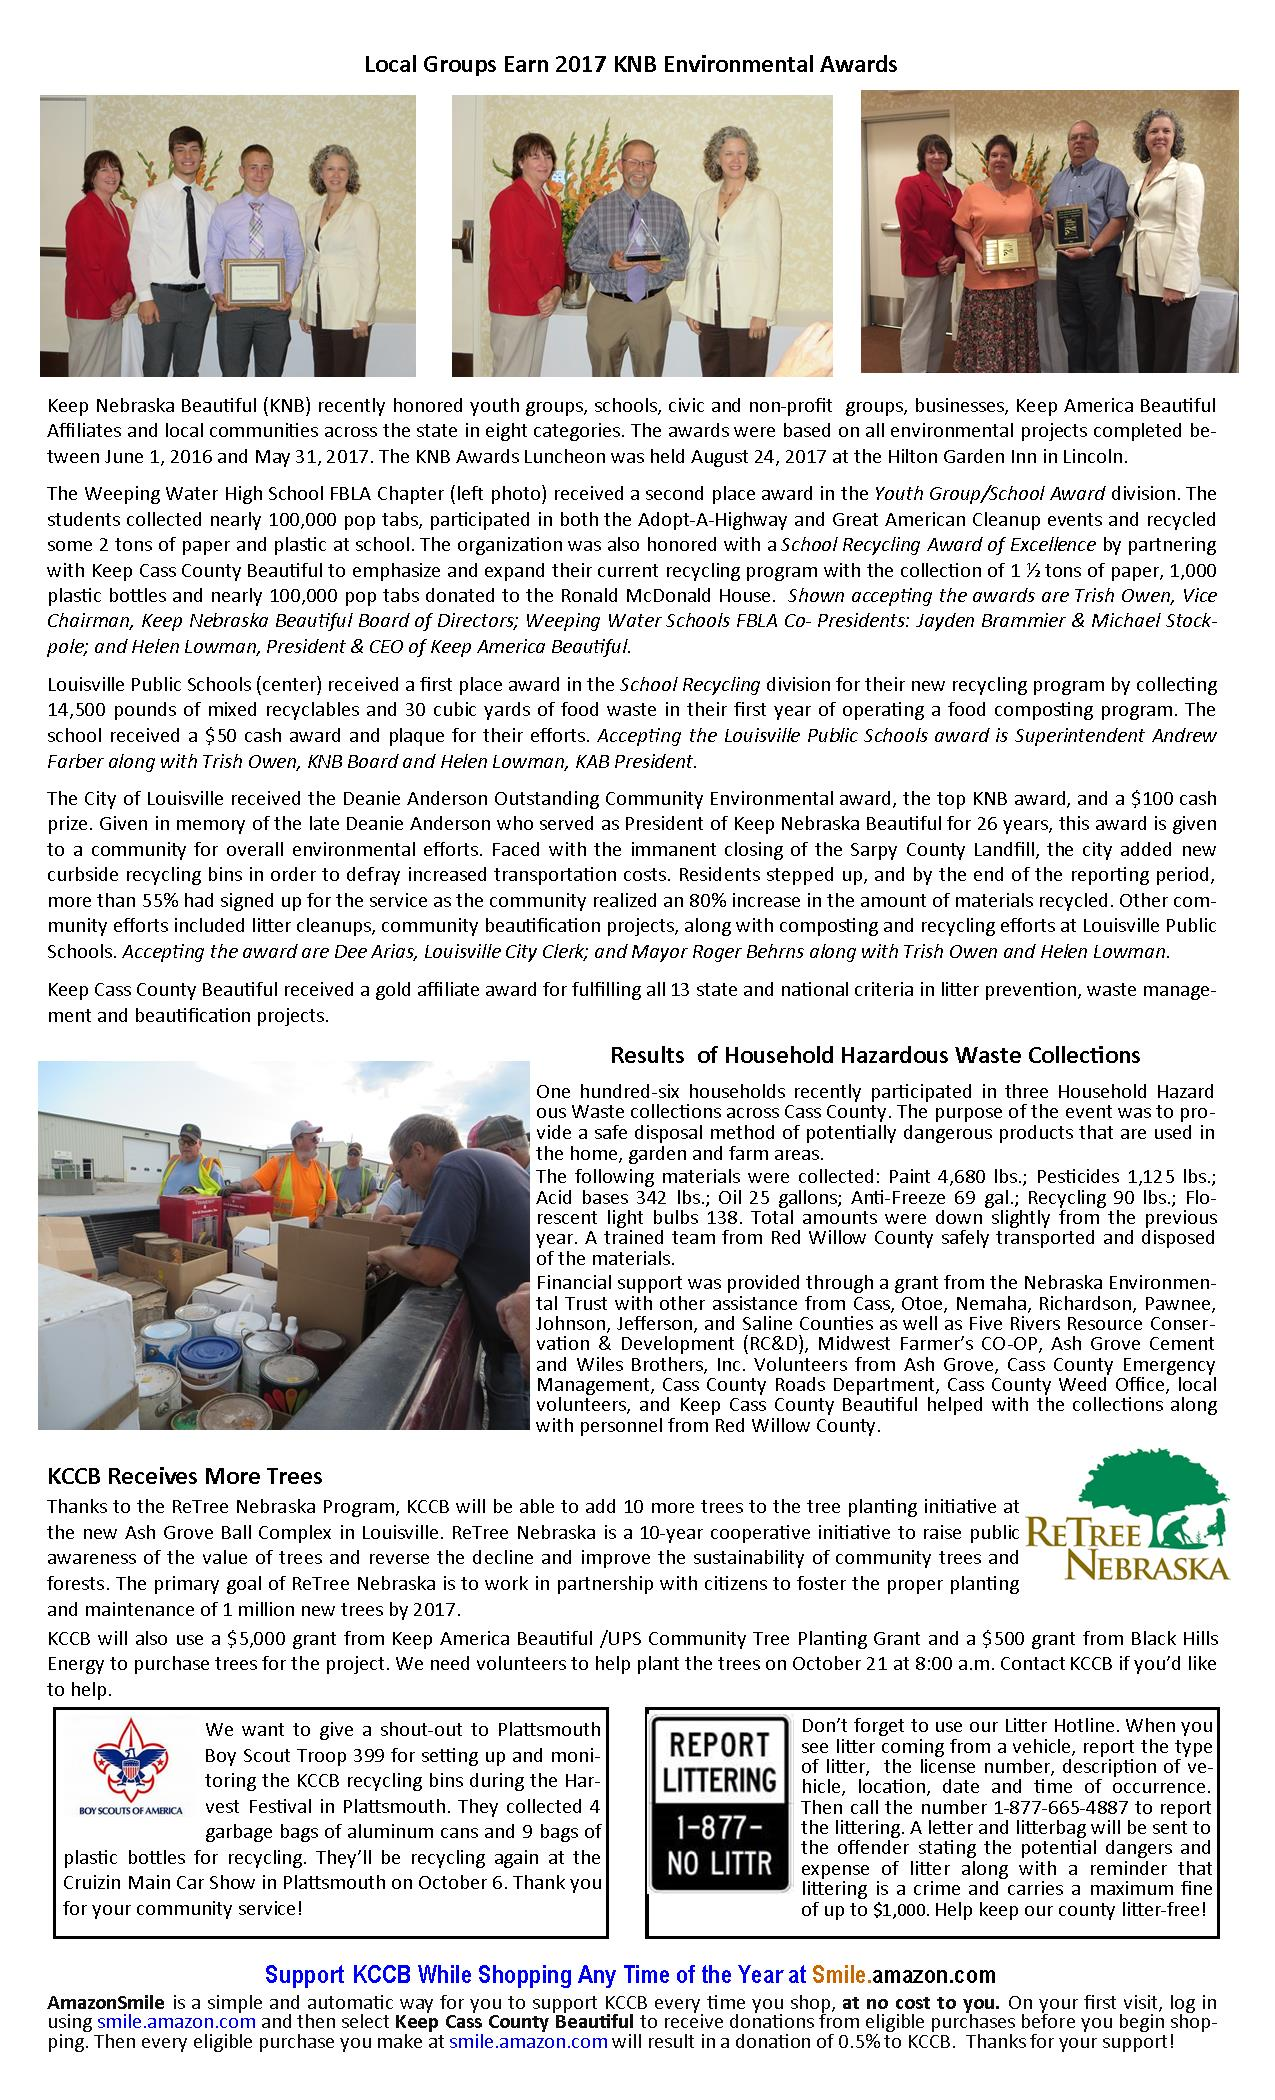 KCCB Newsletter page 2